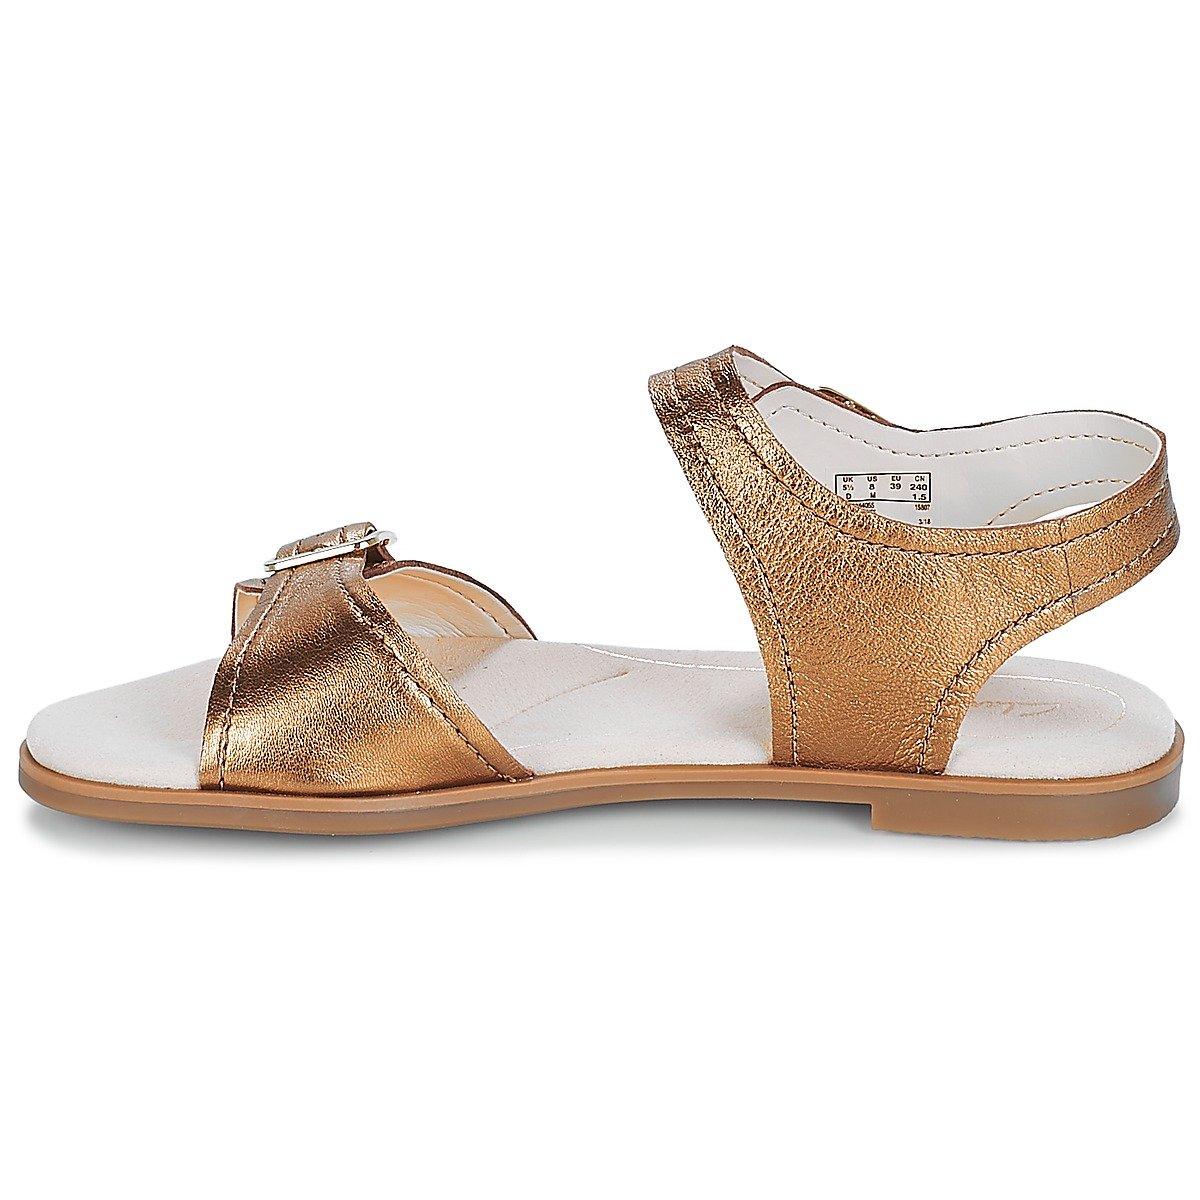 Clarks Metallic Bay Primrose - Bronze Metallic Clarks Bronze / Metallic c0e35d